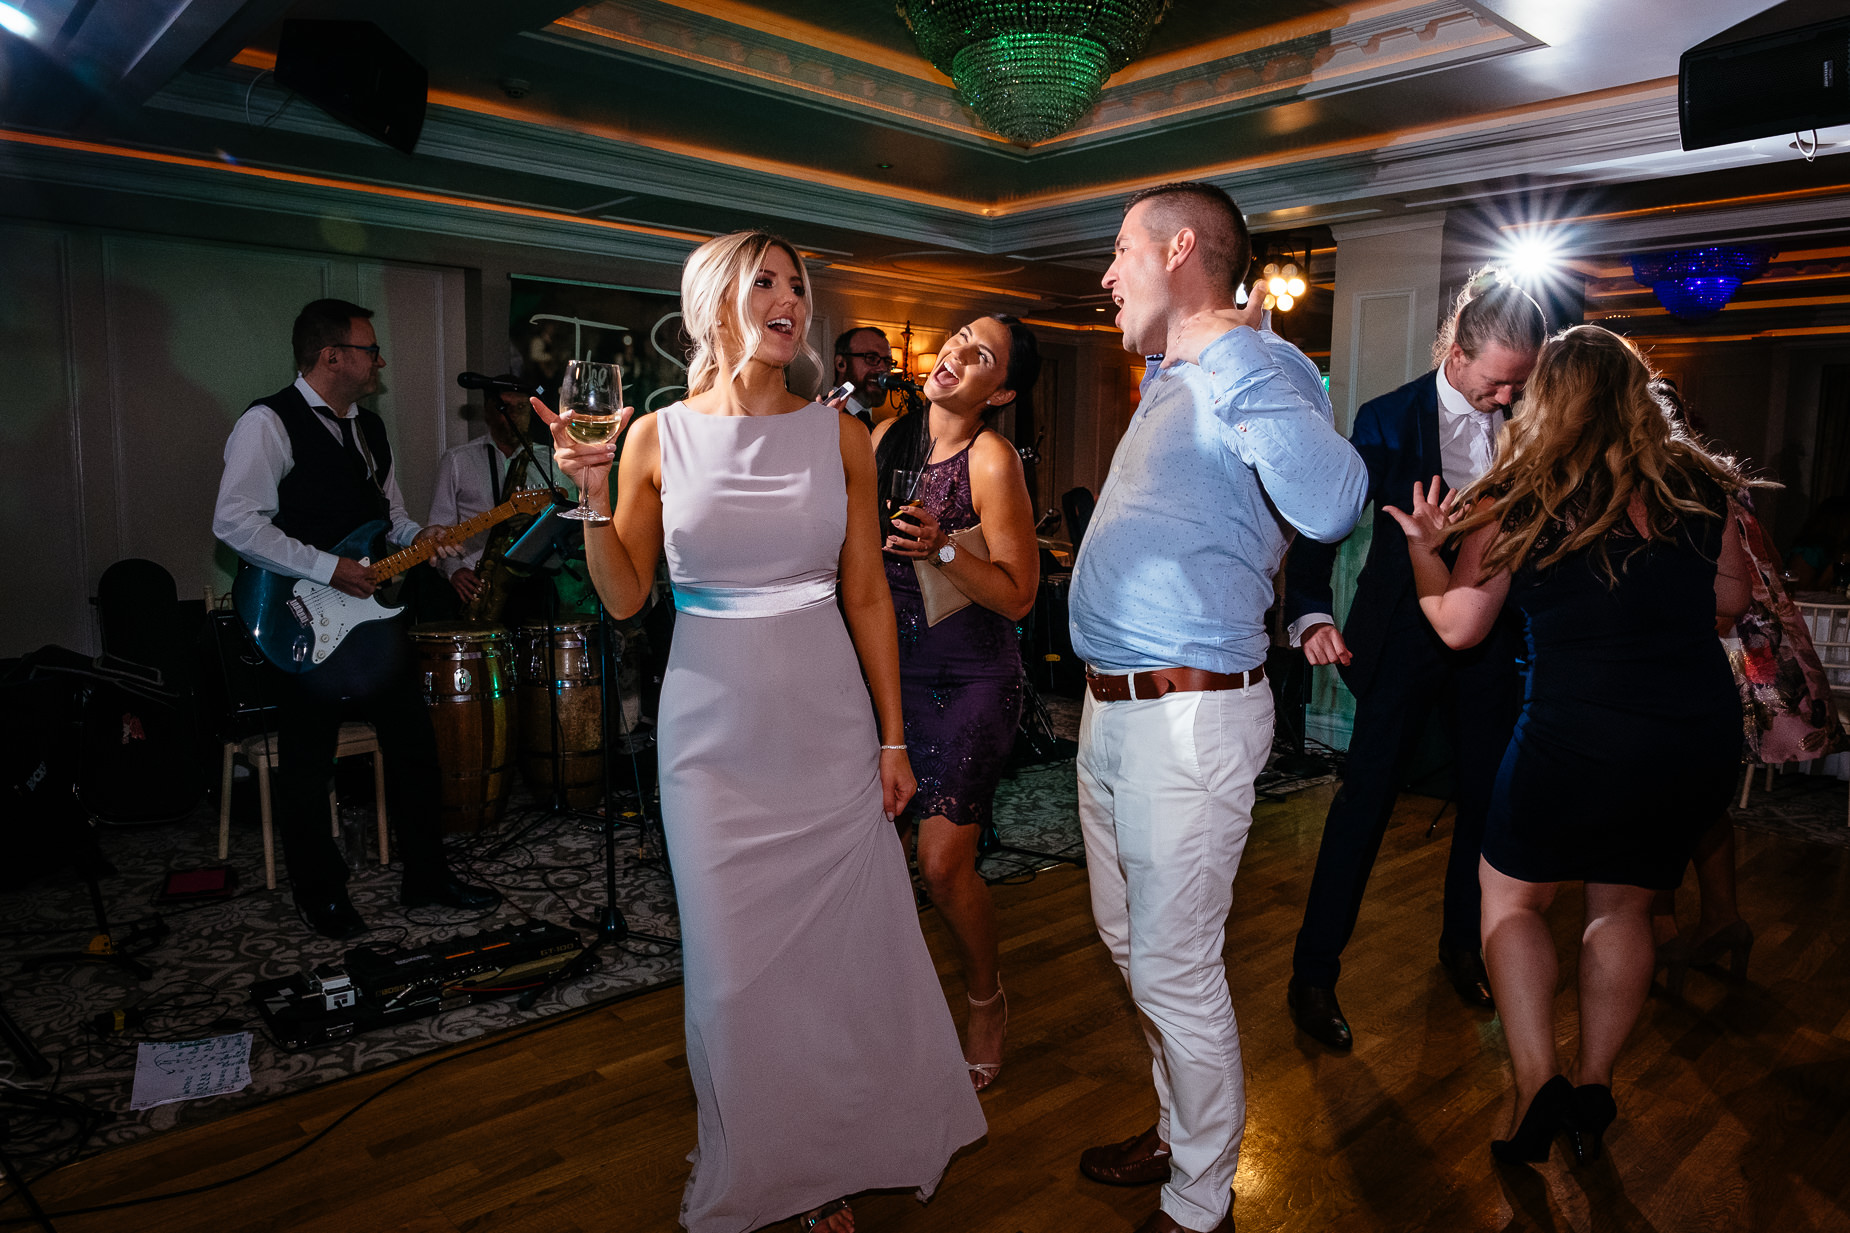 wedding guests dancing on dance floor